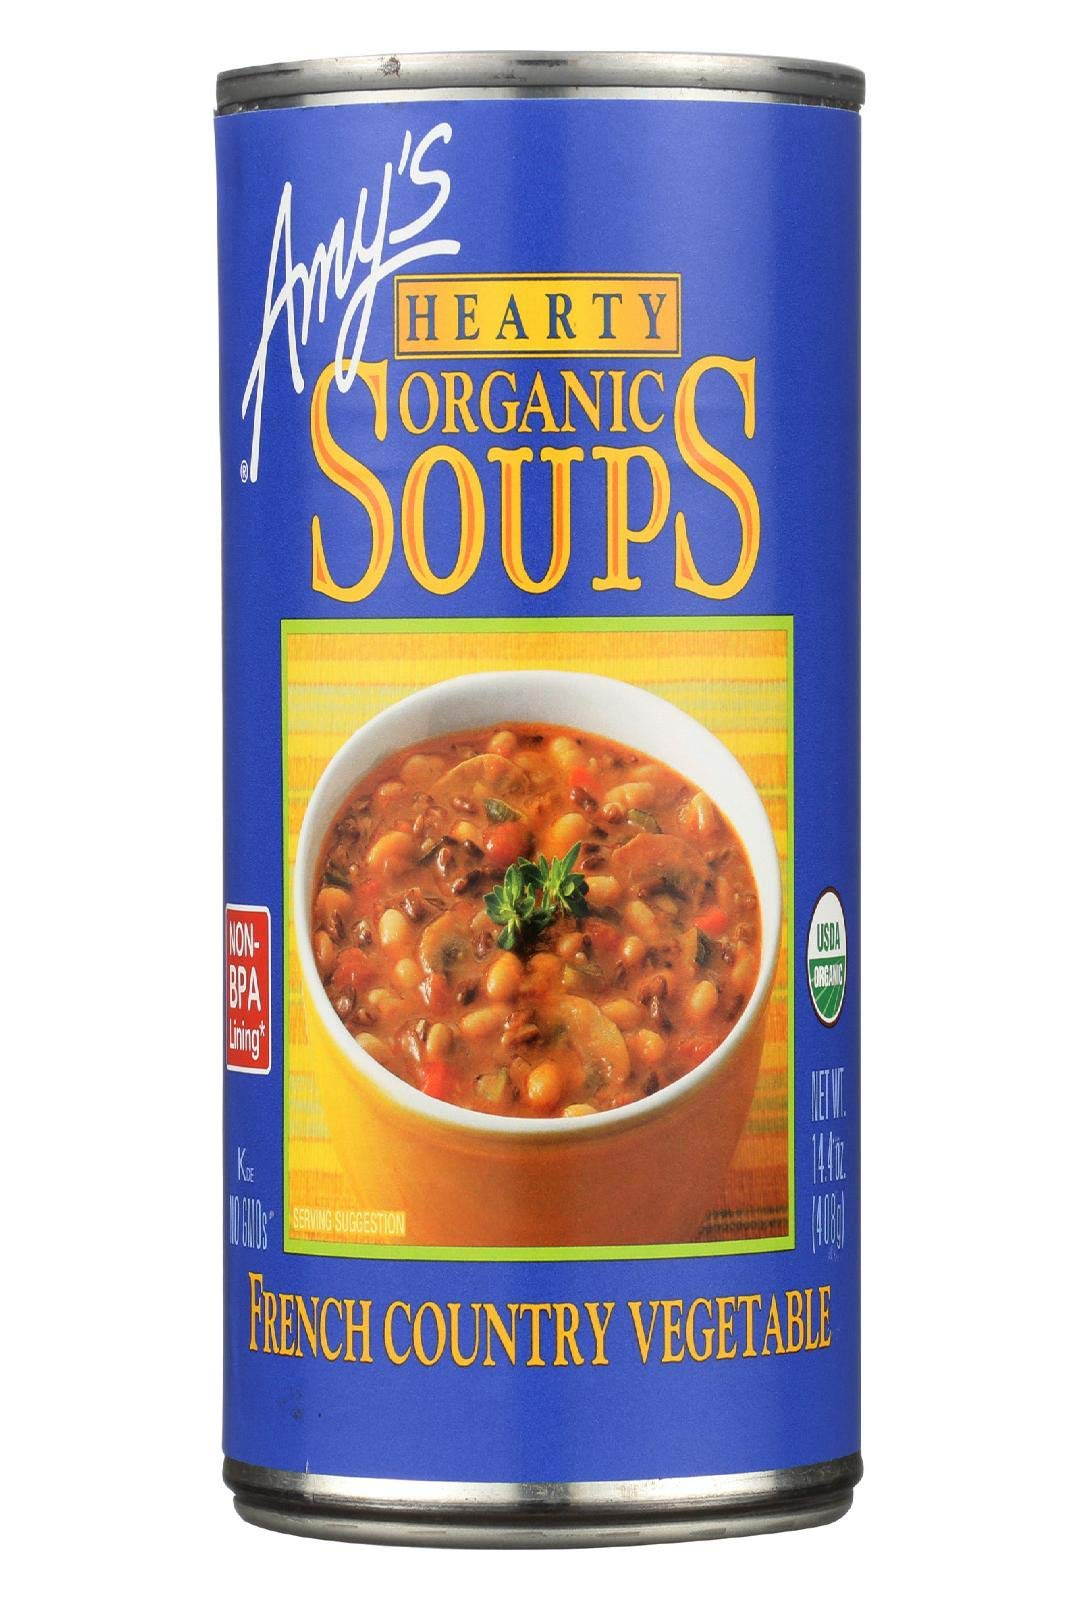 Organic Soup; Vegetarian Hearty French Country